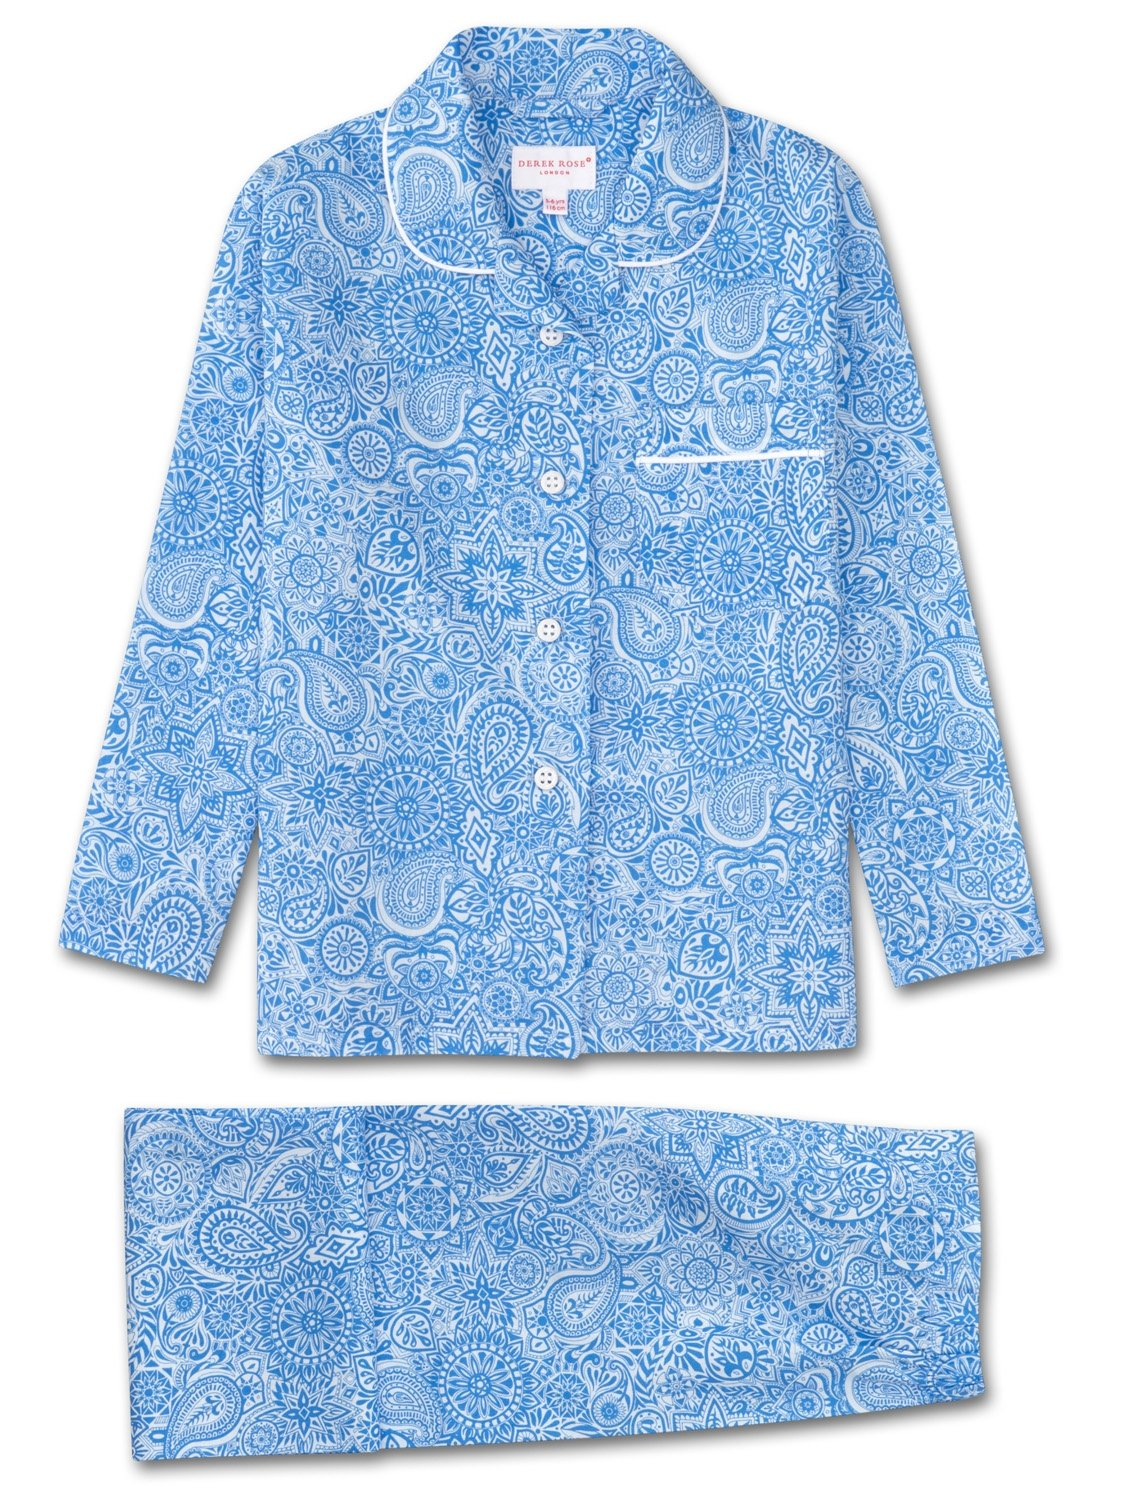 Girls' Pyjamas Ledbury 6 Cotton Batiste Blue